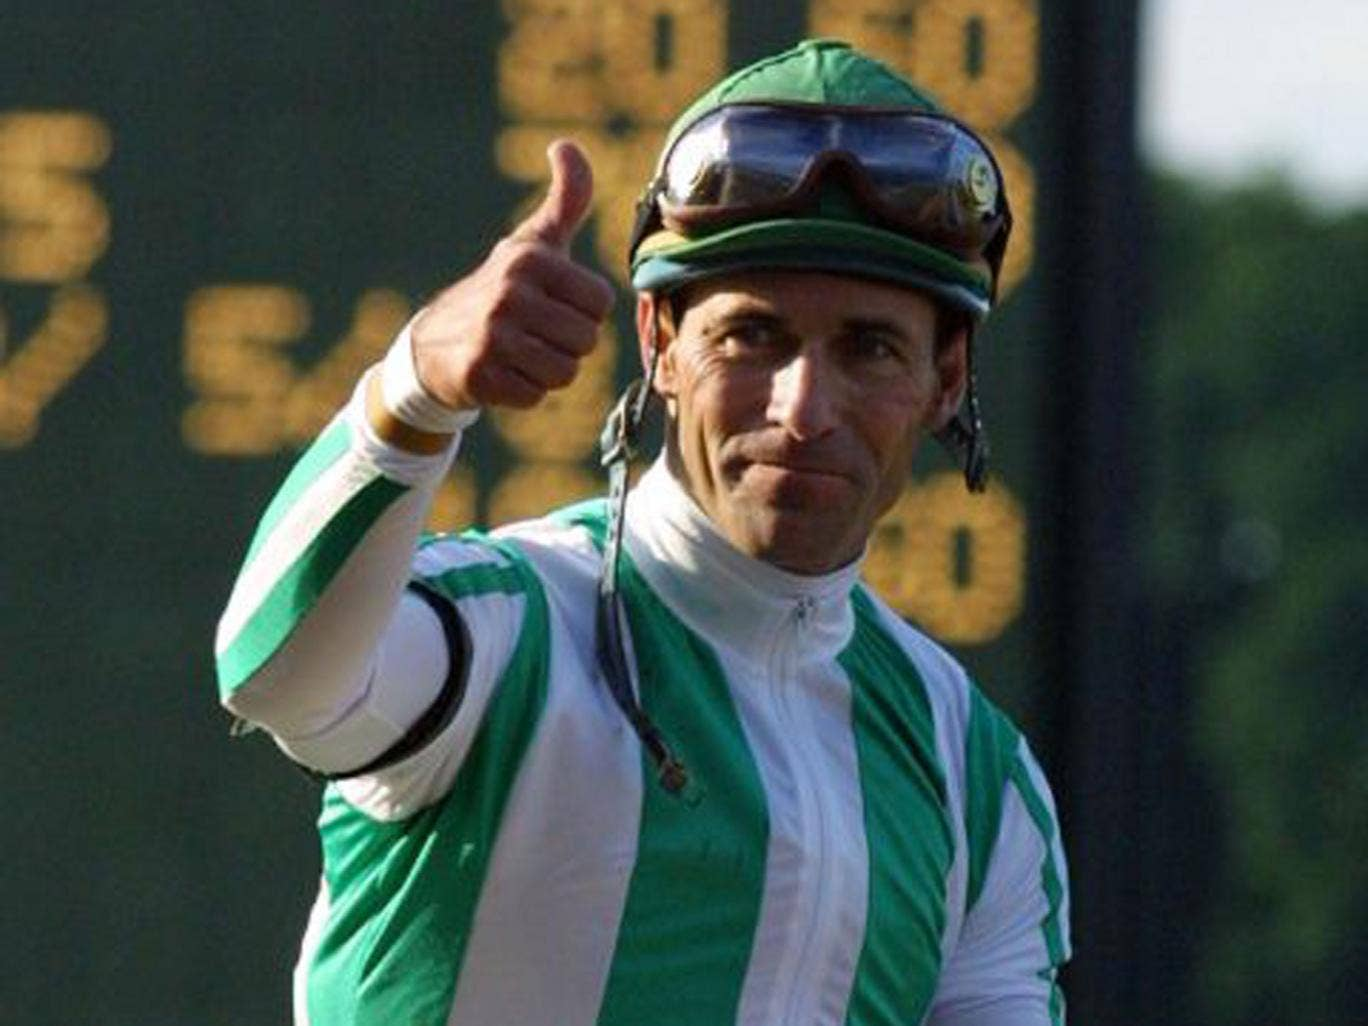 US jockey Gary Stevens, pictured here back in 2001, is set to to race again at the age of 49